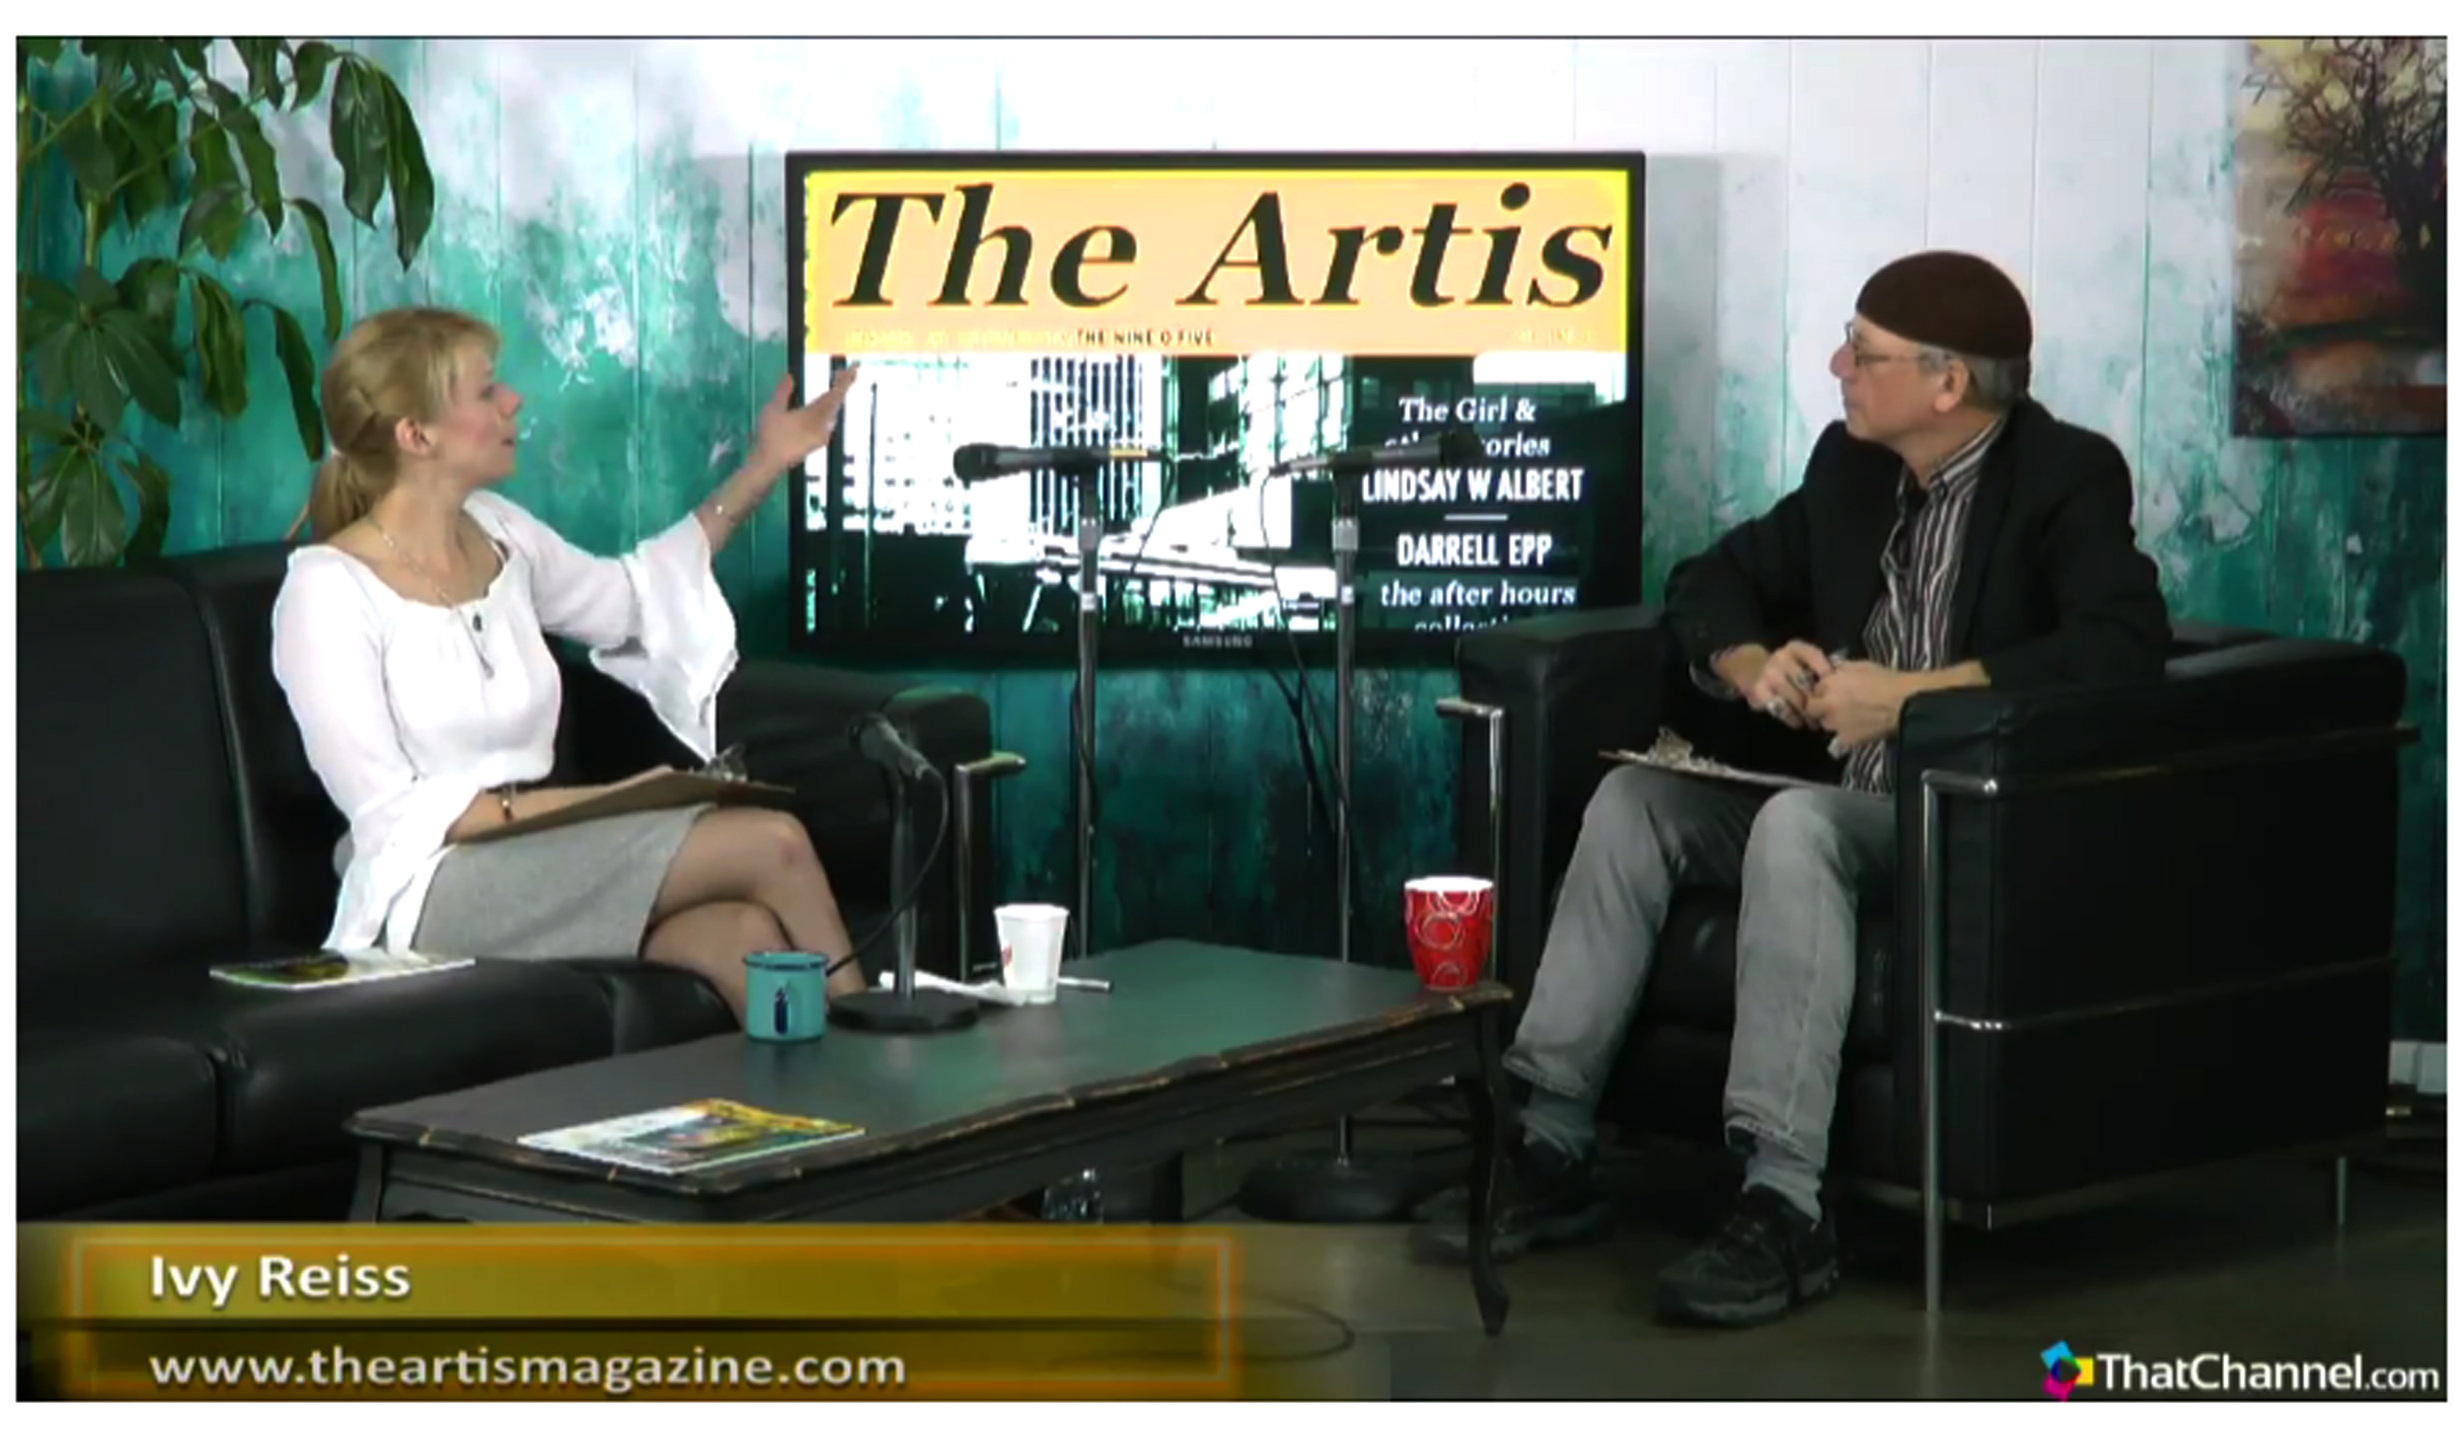 In    ThatChannel studios    with Hugh Reilly. Listen above or    watch the video here.